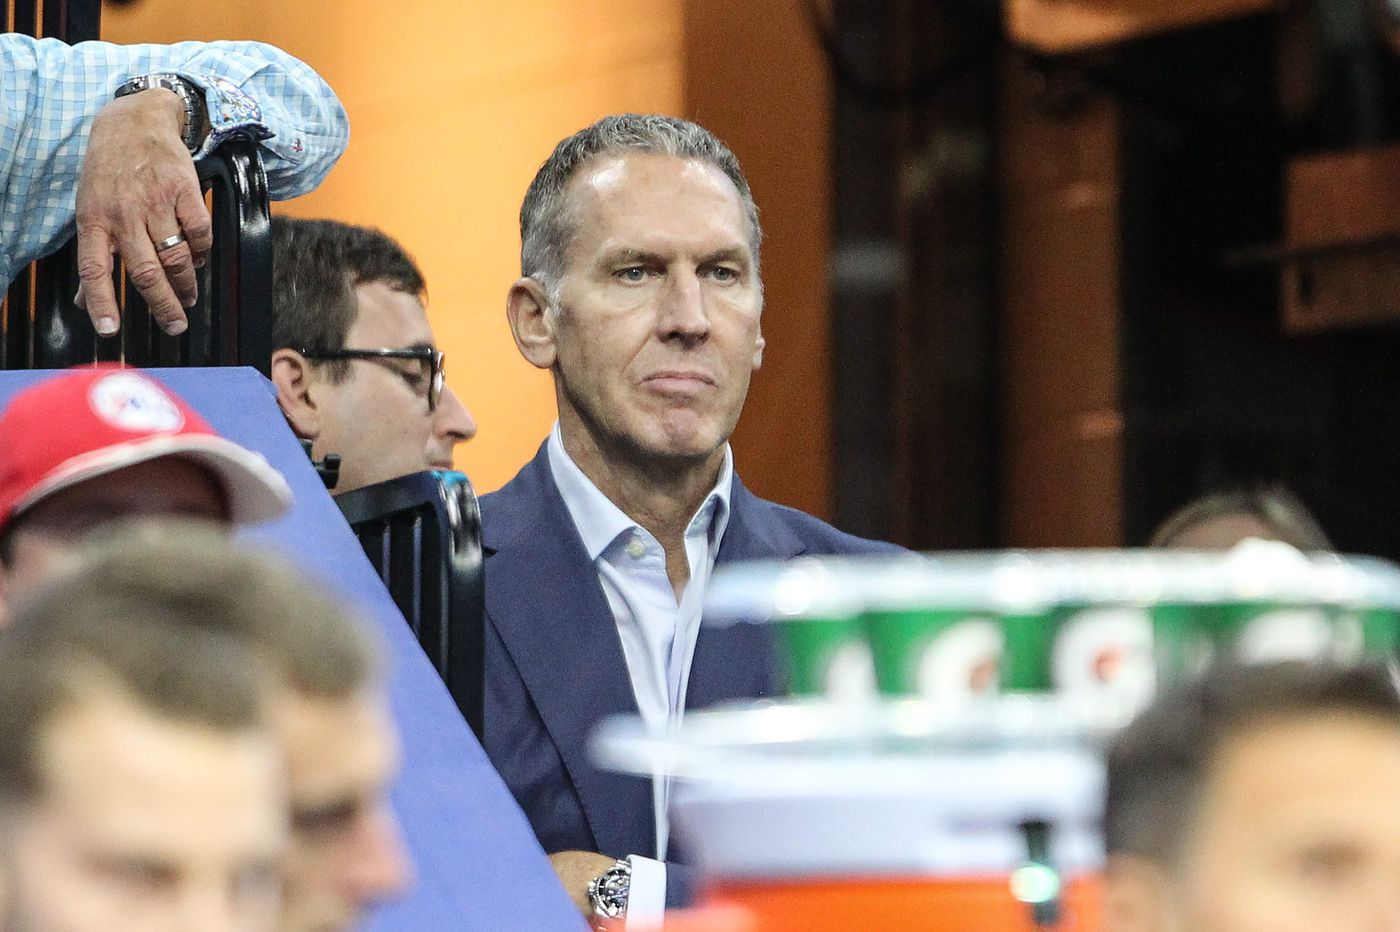 Bryan Colangelo resigns as Sixers president after Twitter controversy